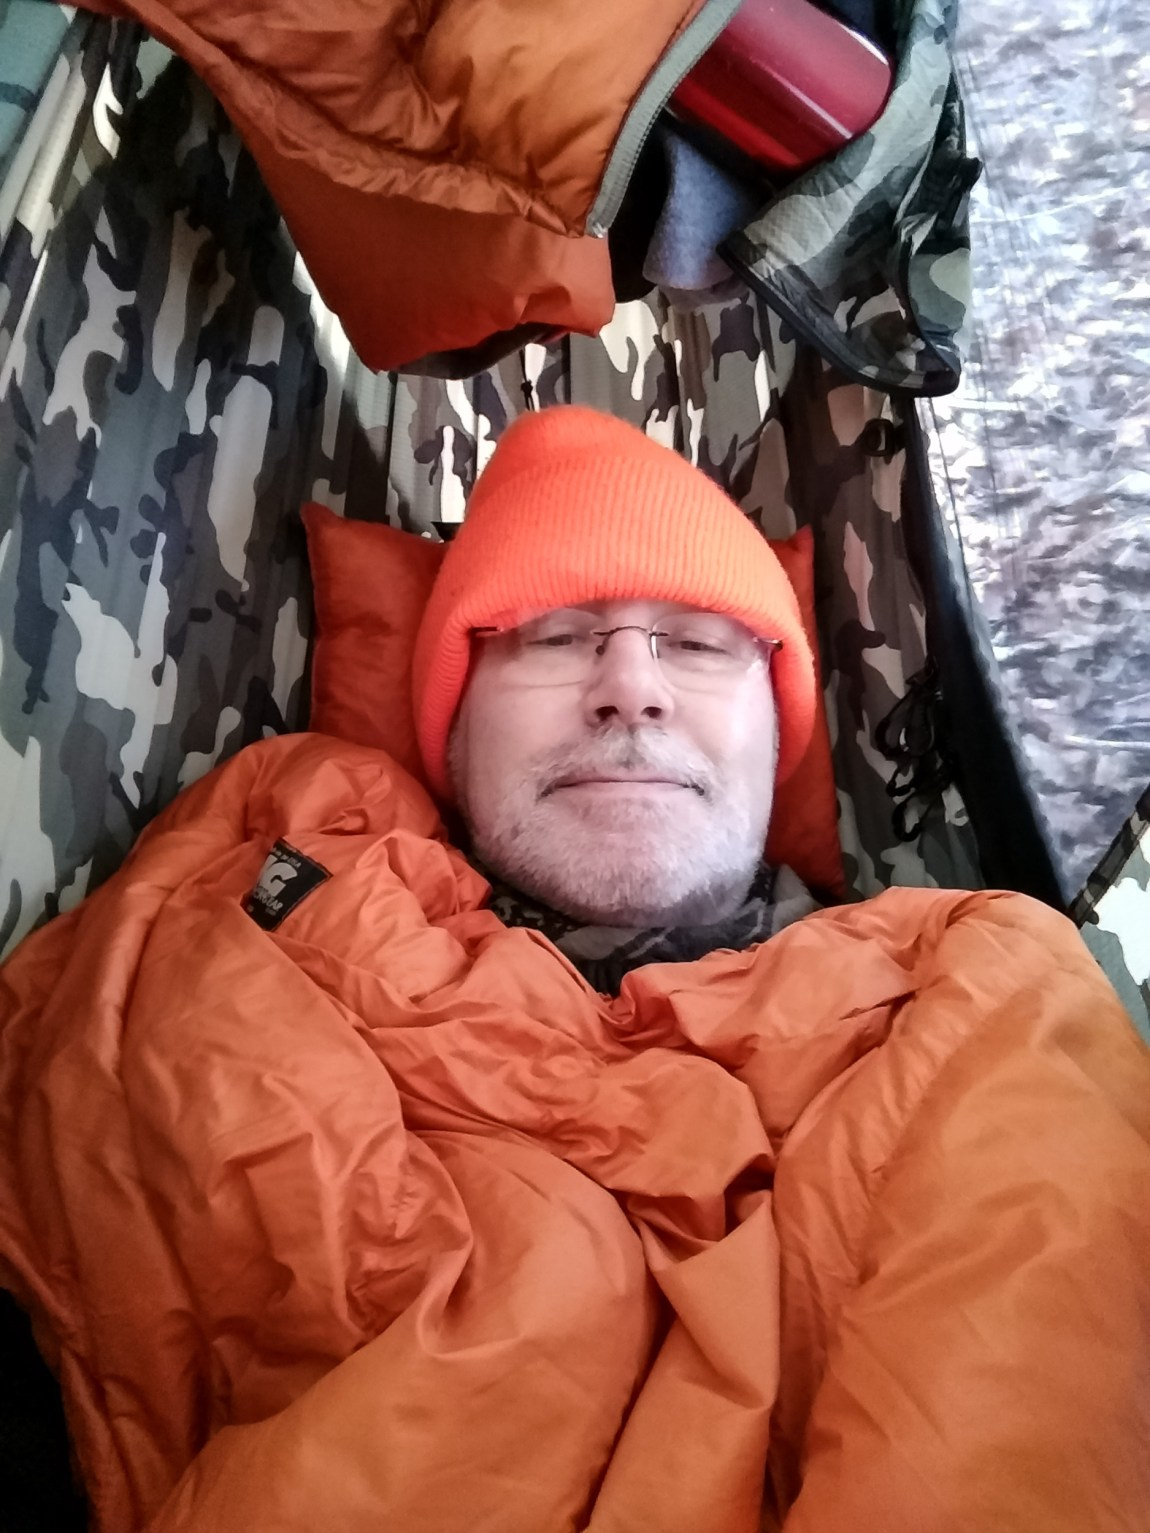 Snug in my hammock - it only dropped to 33°F (.5°C) overnight, so I was warm. Too hot at one point. Copyright © 2019 Gary Allman, all rights reserved.